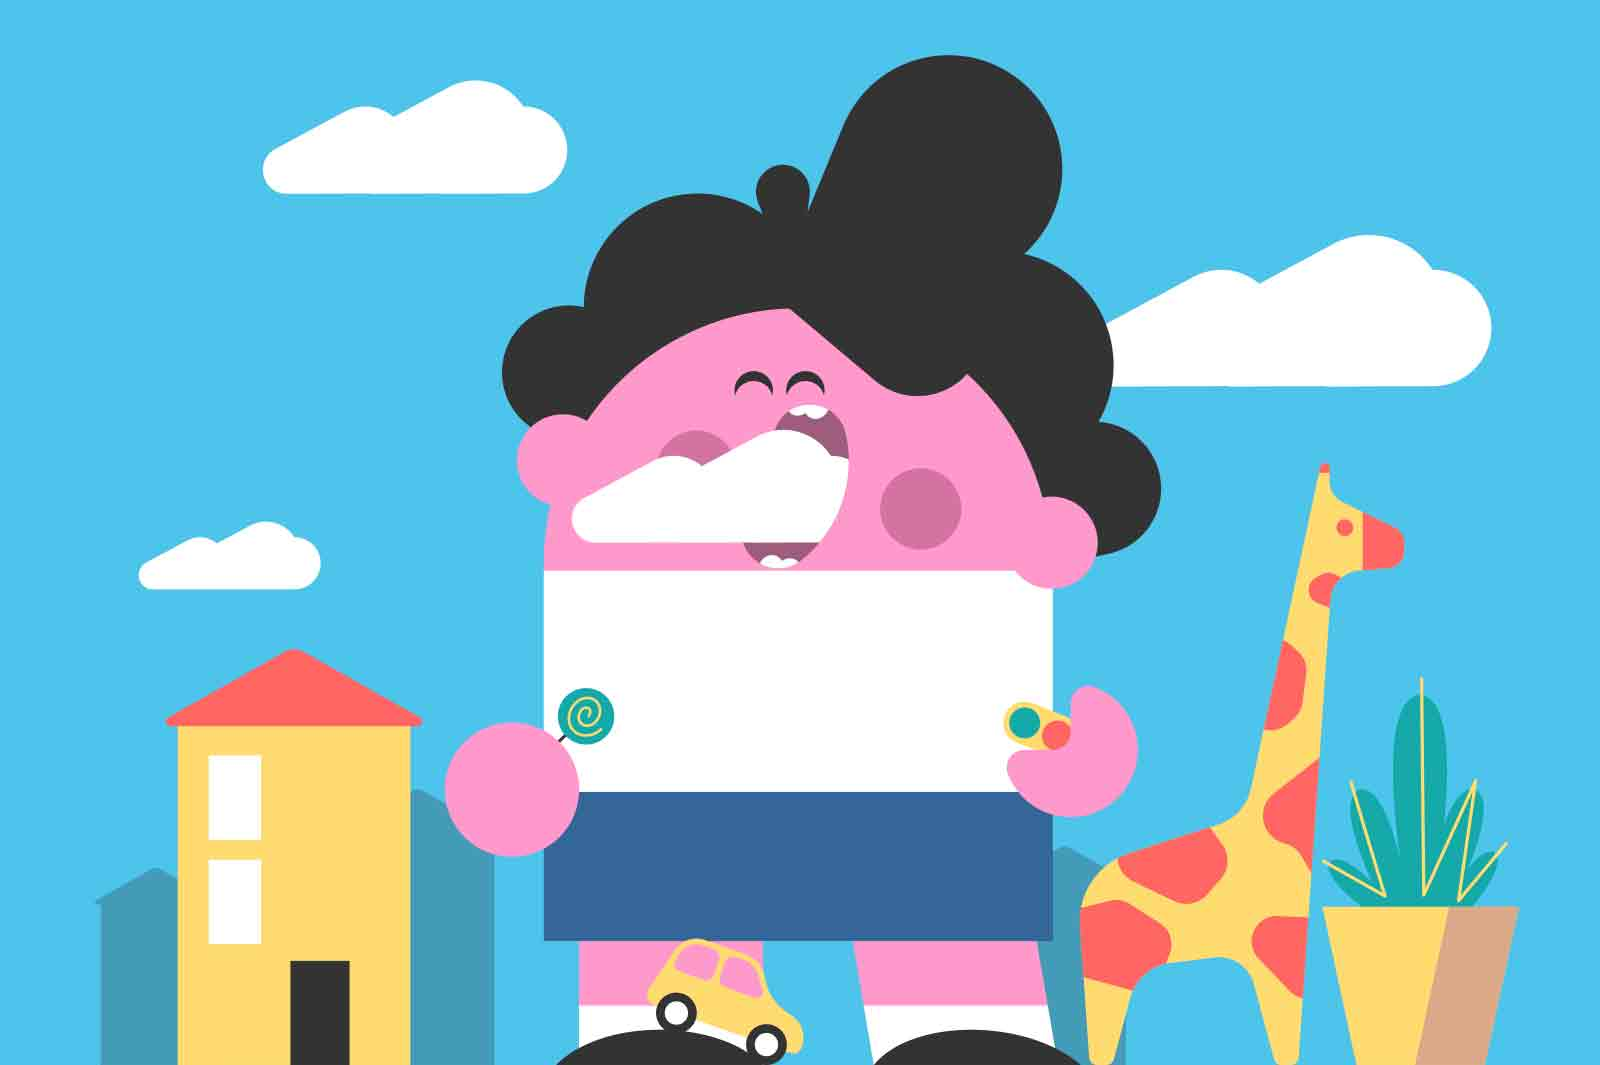 Toddler boy eating cloud on street vector illustration. Tall child catch cloud with mouth flat style. Fun, childhood, outdoors concept